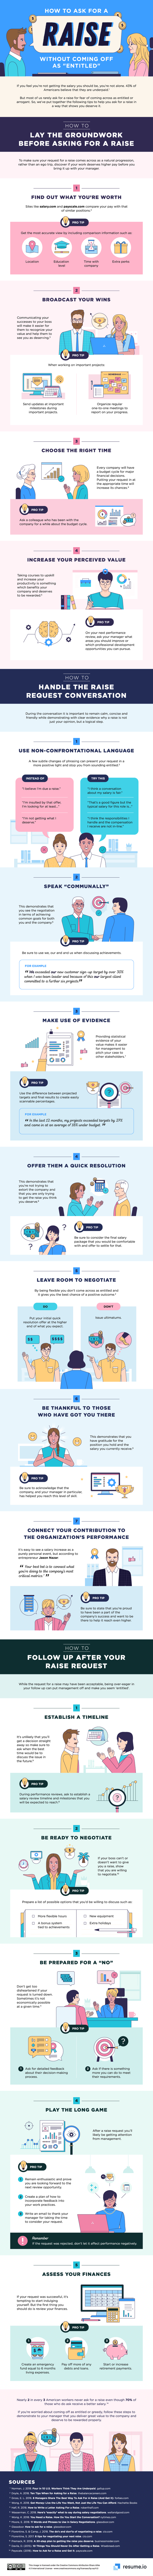 How-to-Ask-for-a-Raise-Without-Coming-off-as-Entitled